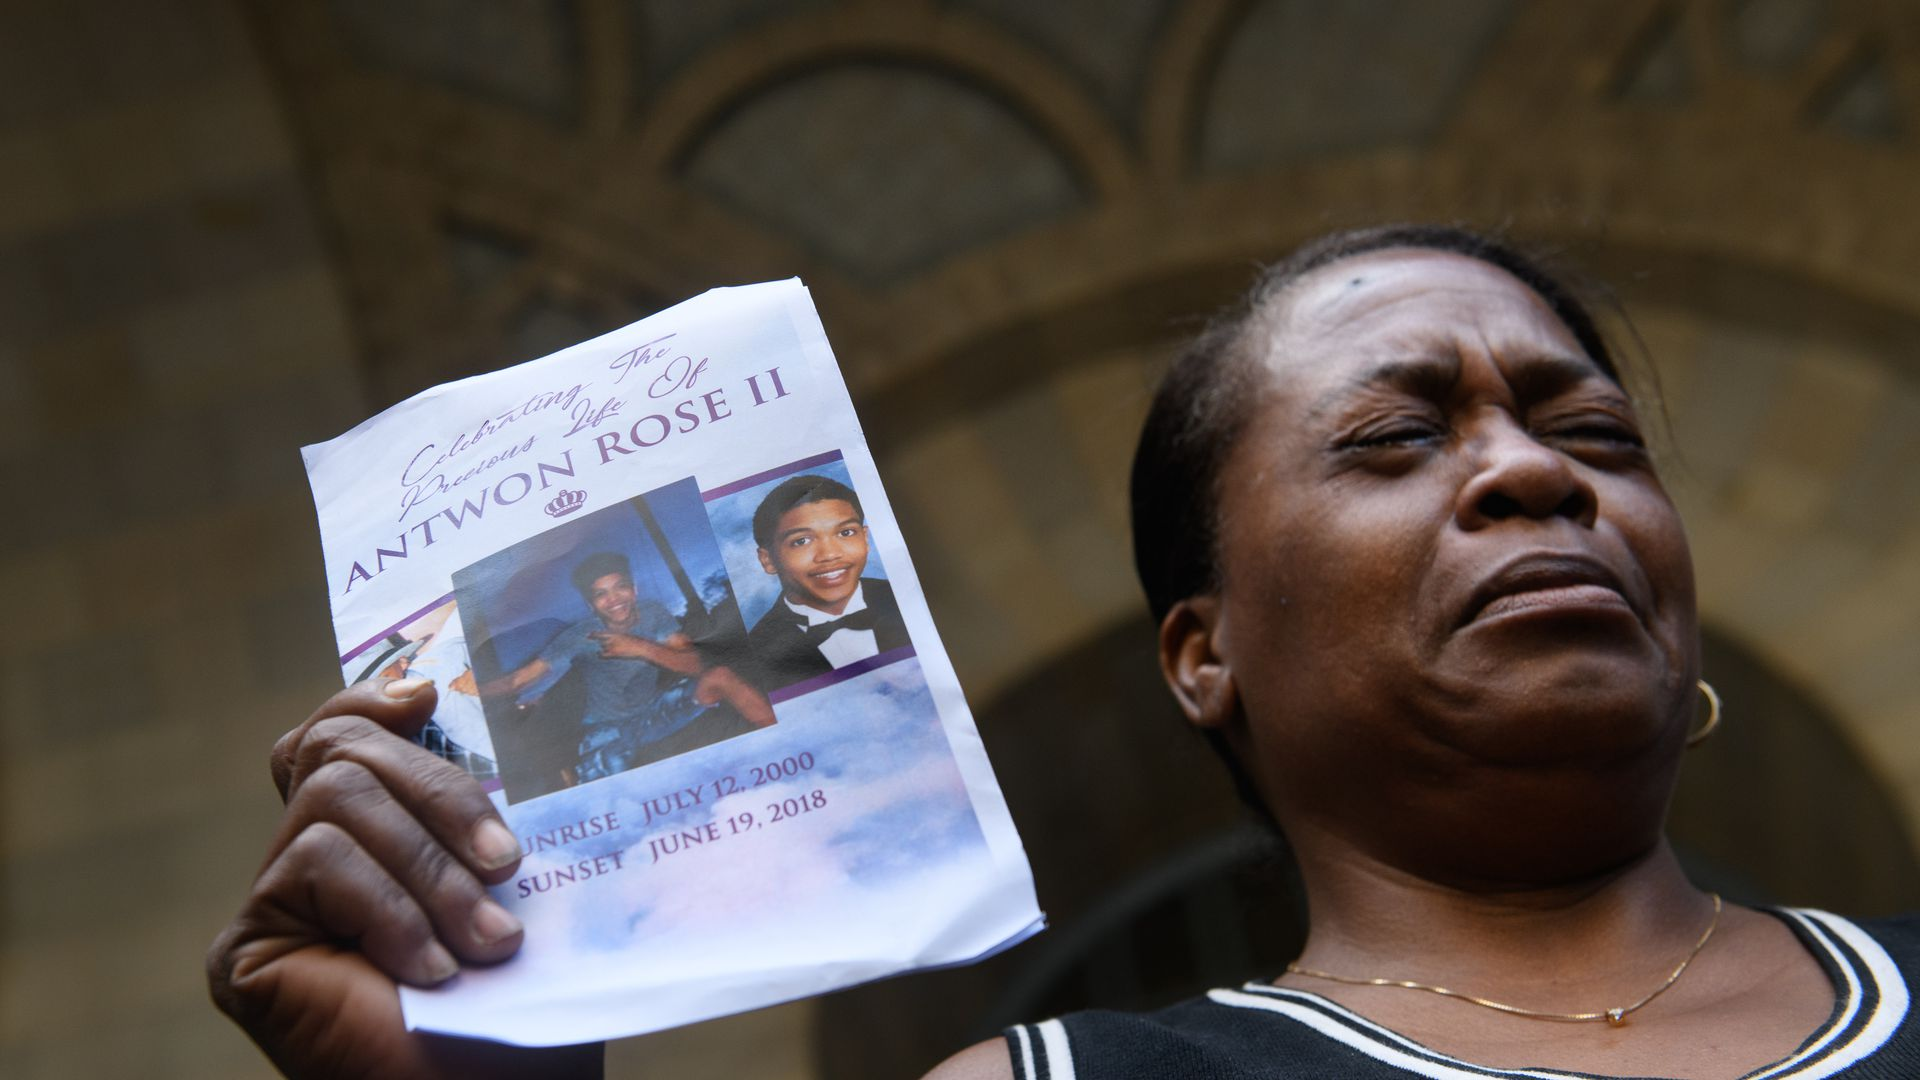 Carmen Ashley, the great aunt of Antwon Rose II, cries as she holds the memorial card from Rose's funeral in this file photo.